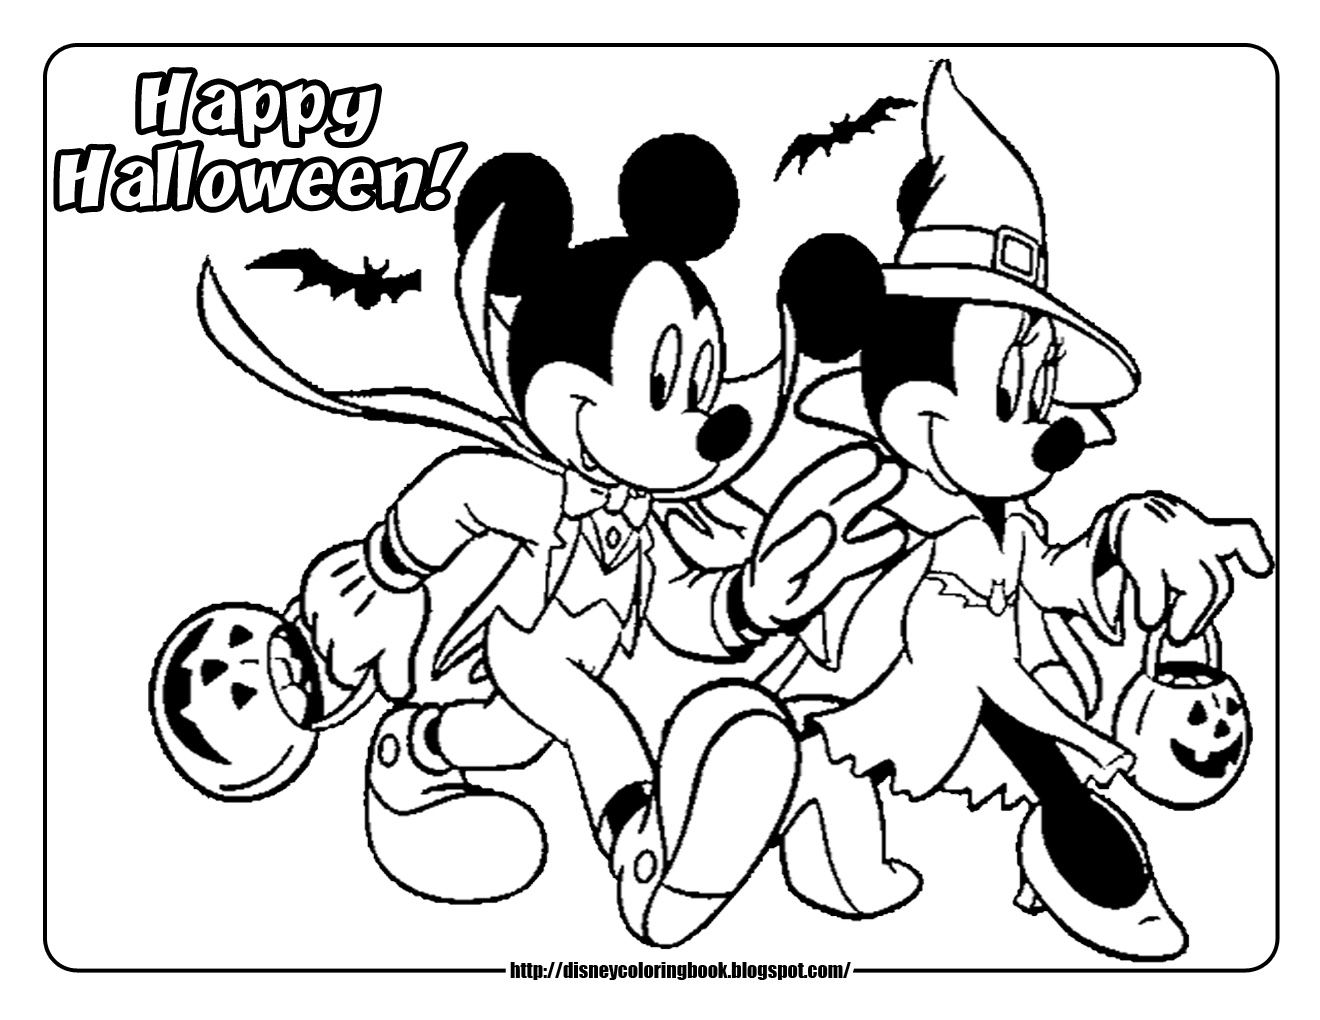 1320x1020 Happy Halloween Coloring Pages Games Ribsvigyapan Com Cute Best